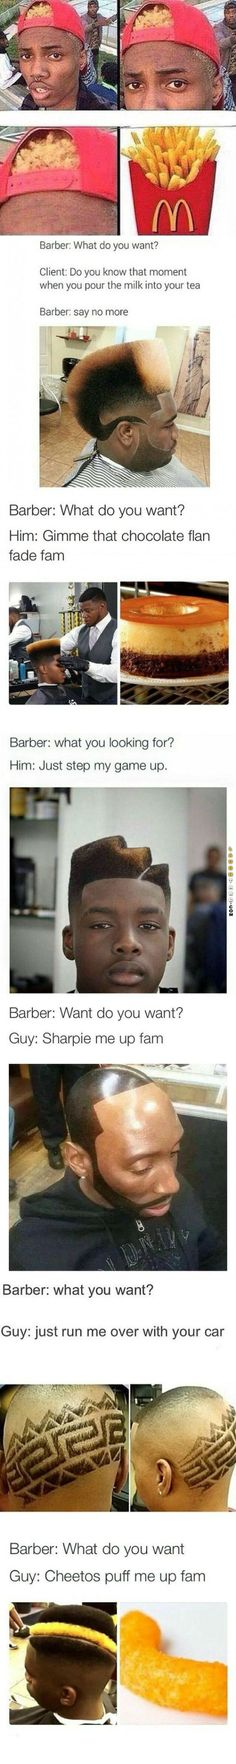 Funny haircuts. This barber is awesome. lol quality